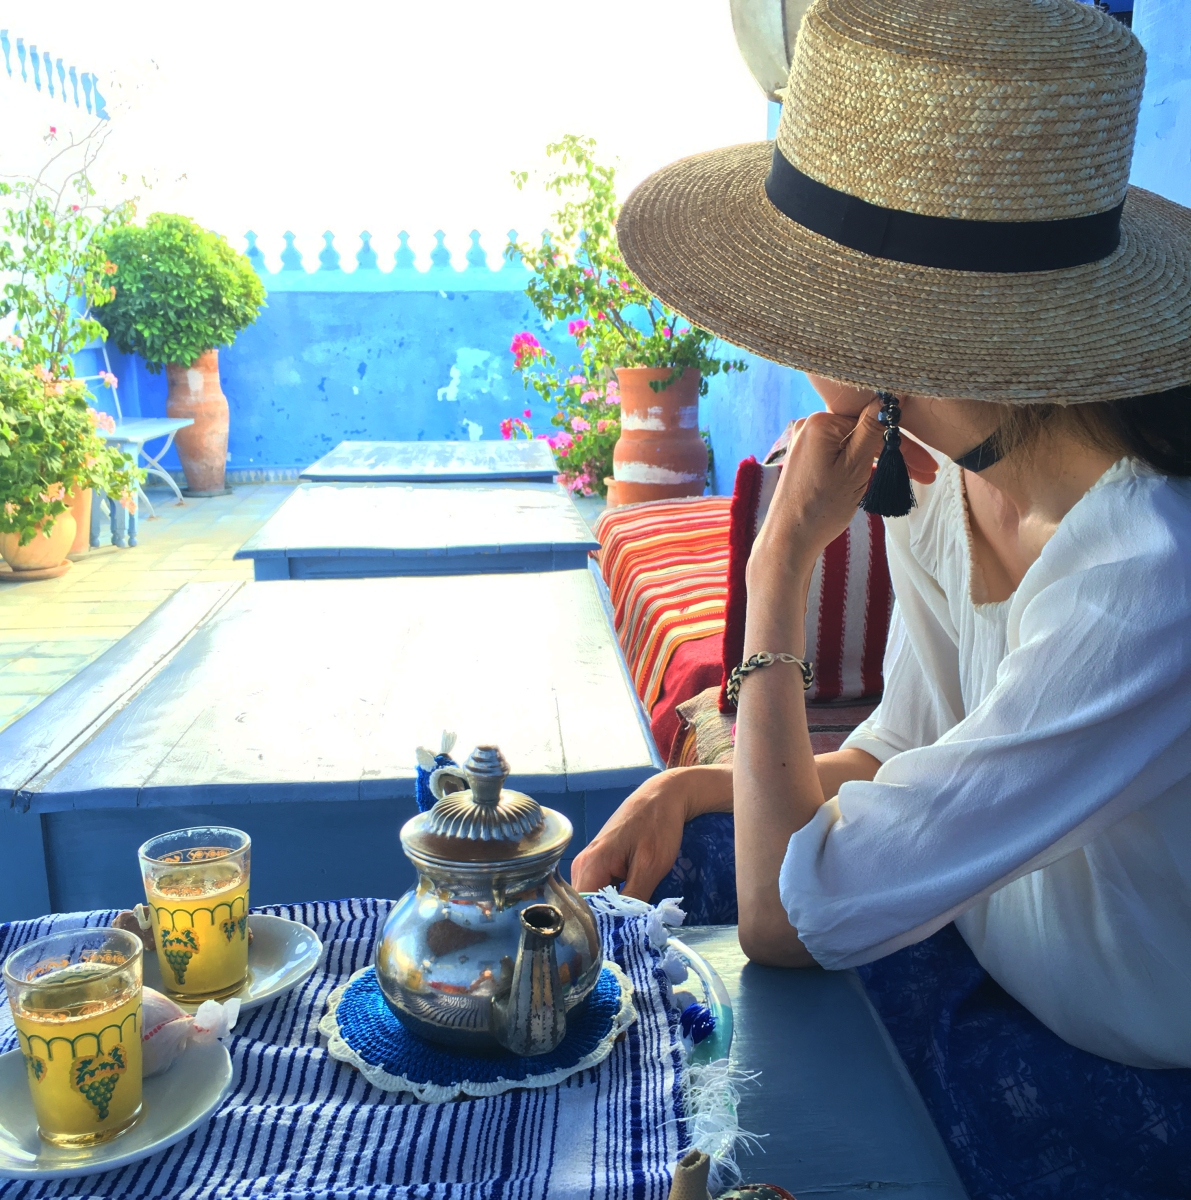 5 Things I Learned About Skin Care From My Trip to Spain and Morocco